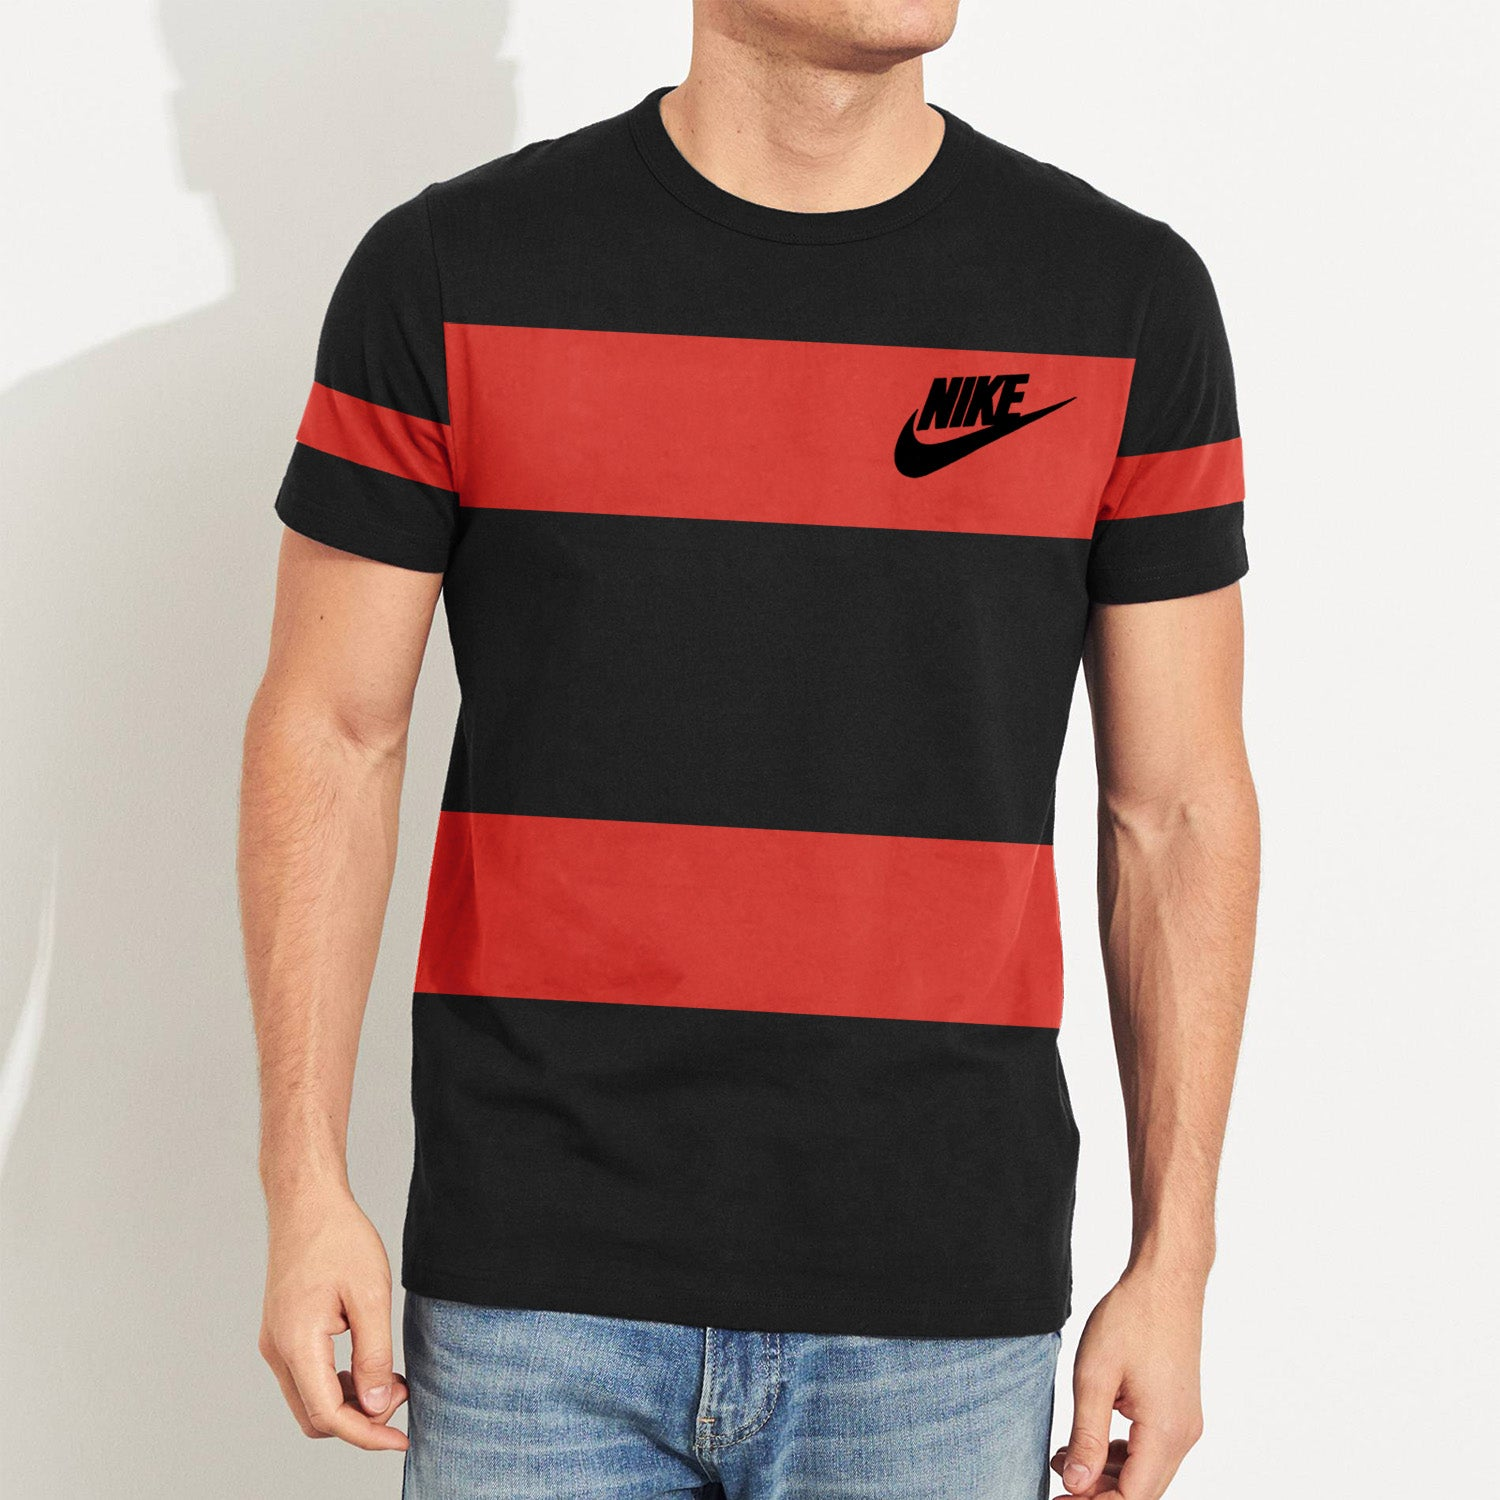 NK Summer Crew Neck Tee Shirt For Men-Black with Red Panel-BE12024